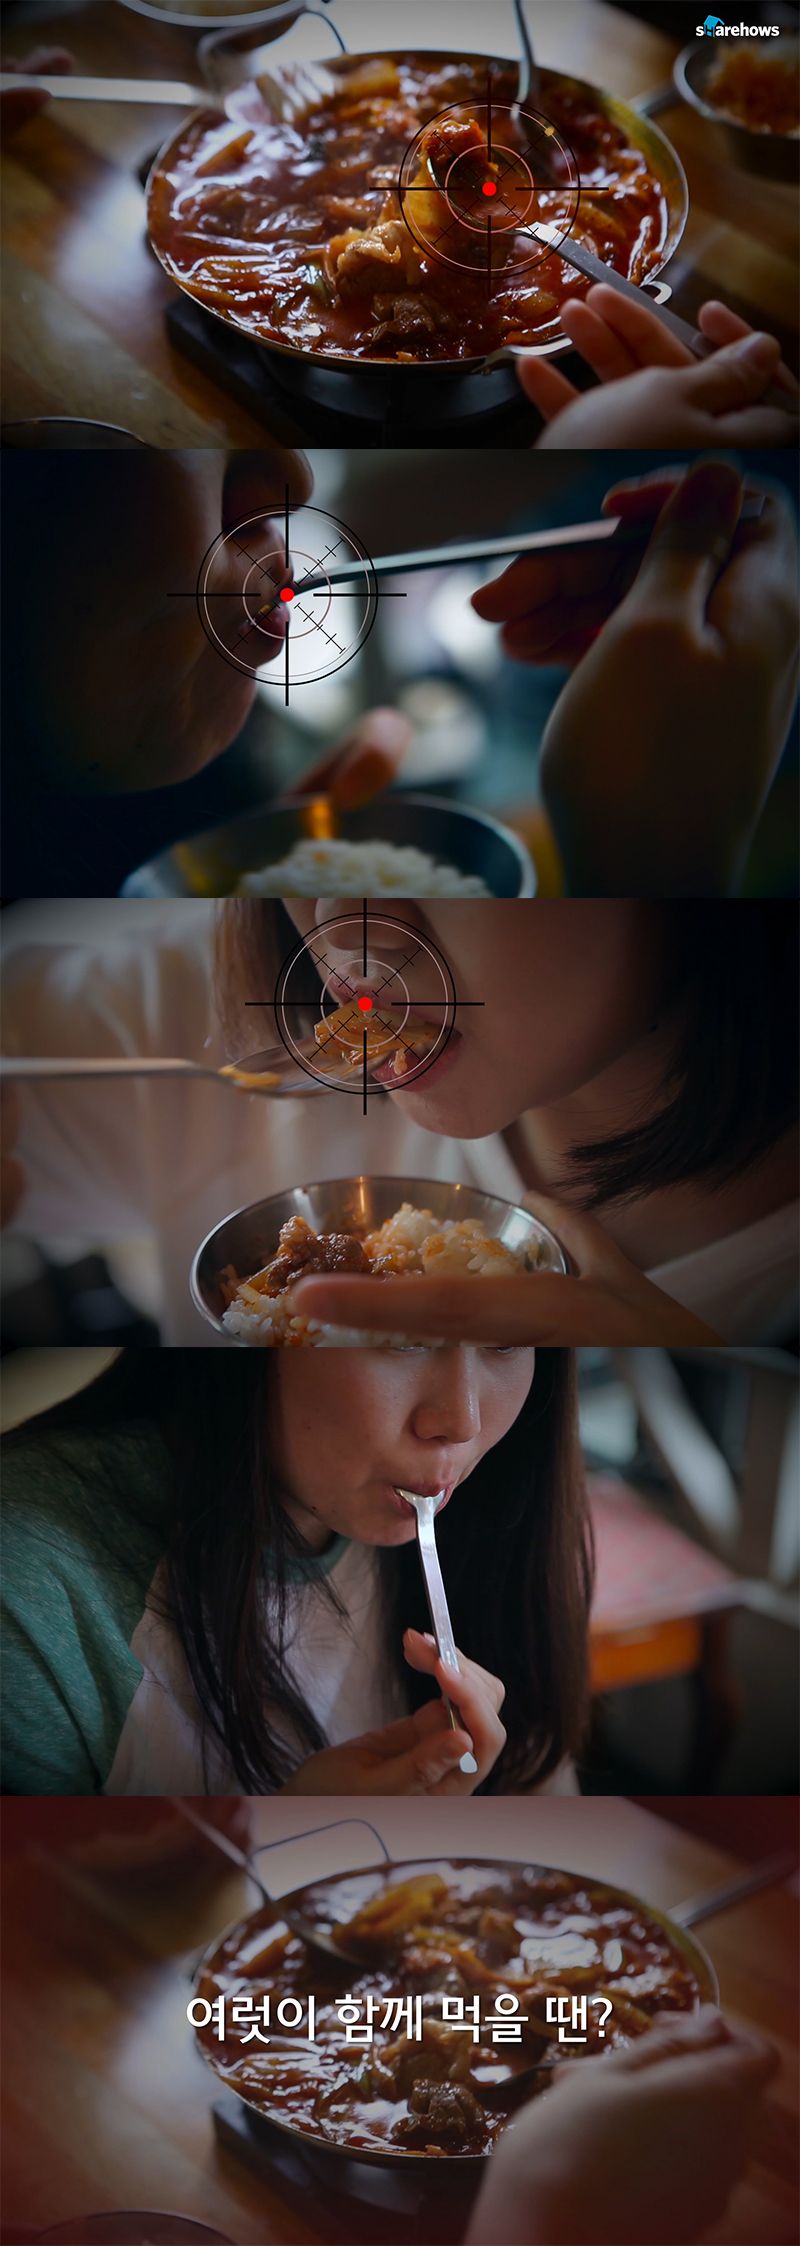 together-eating-menners 01